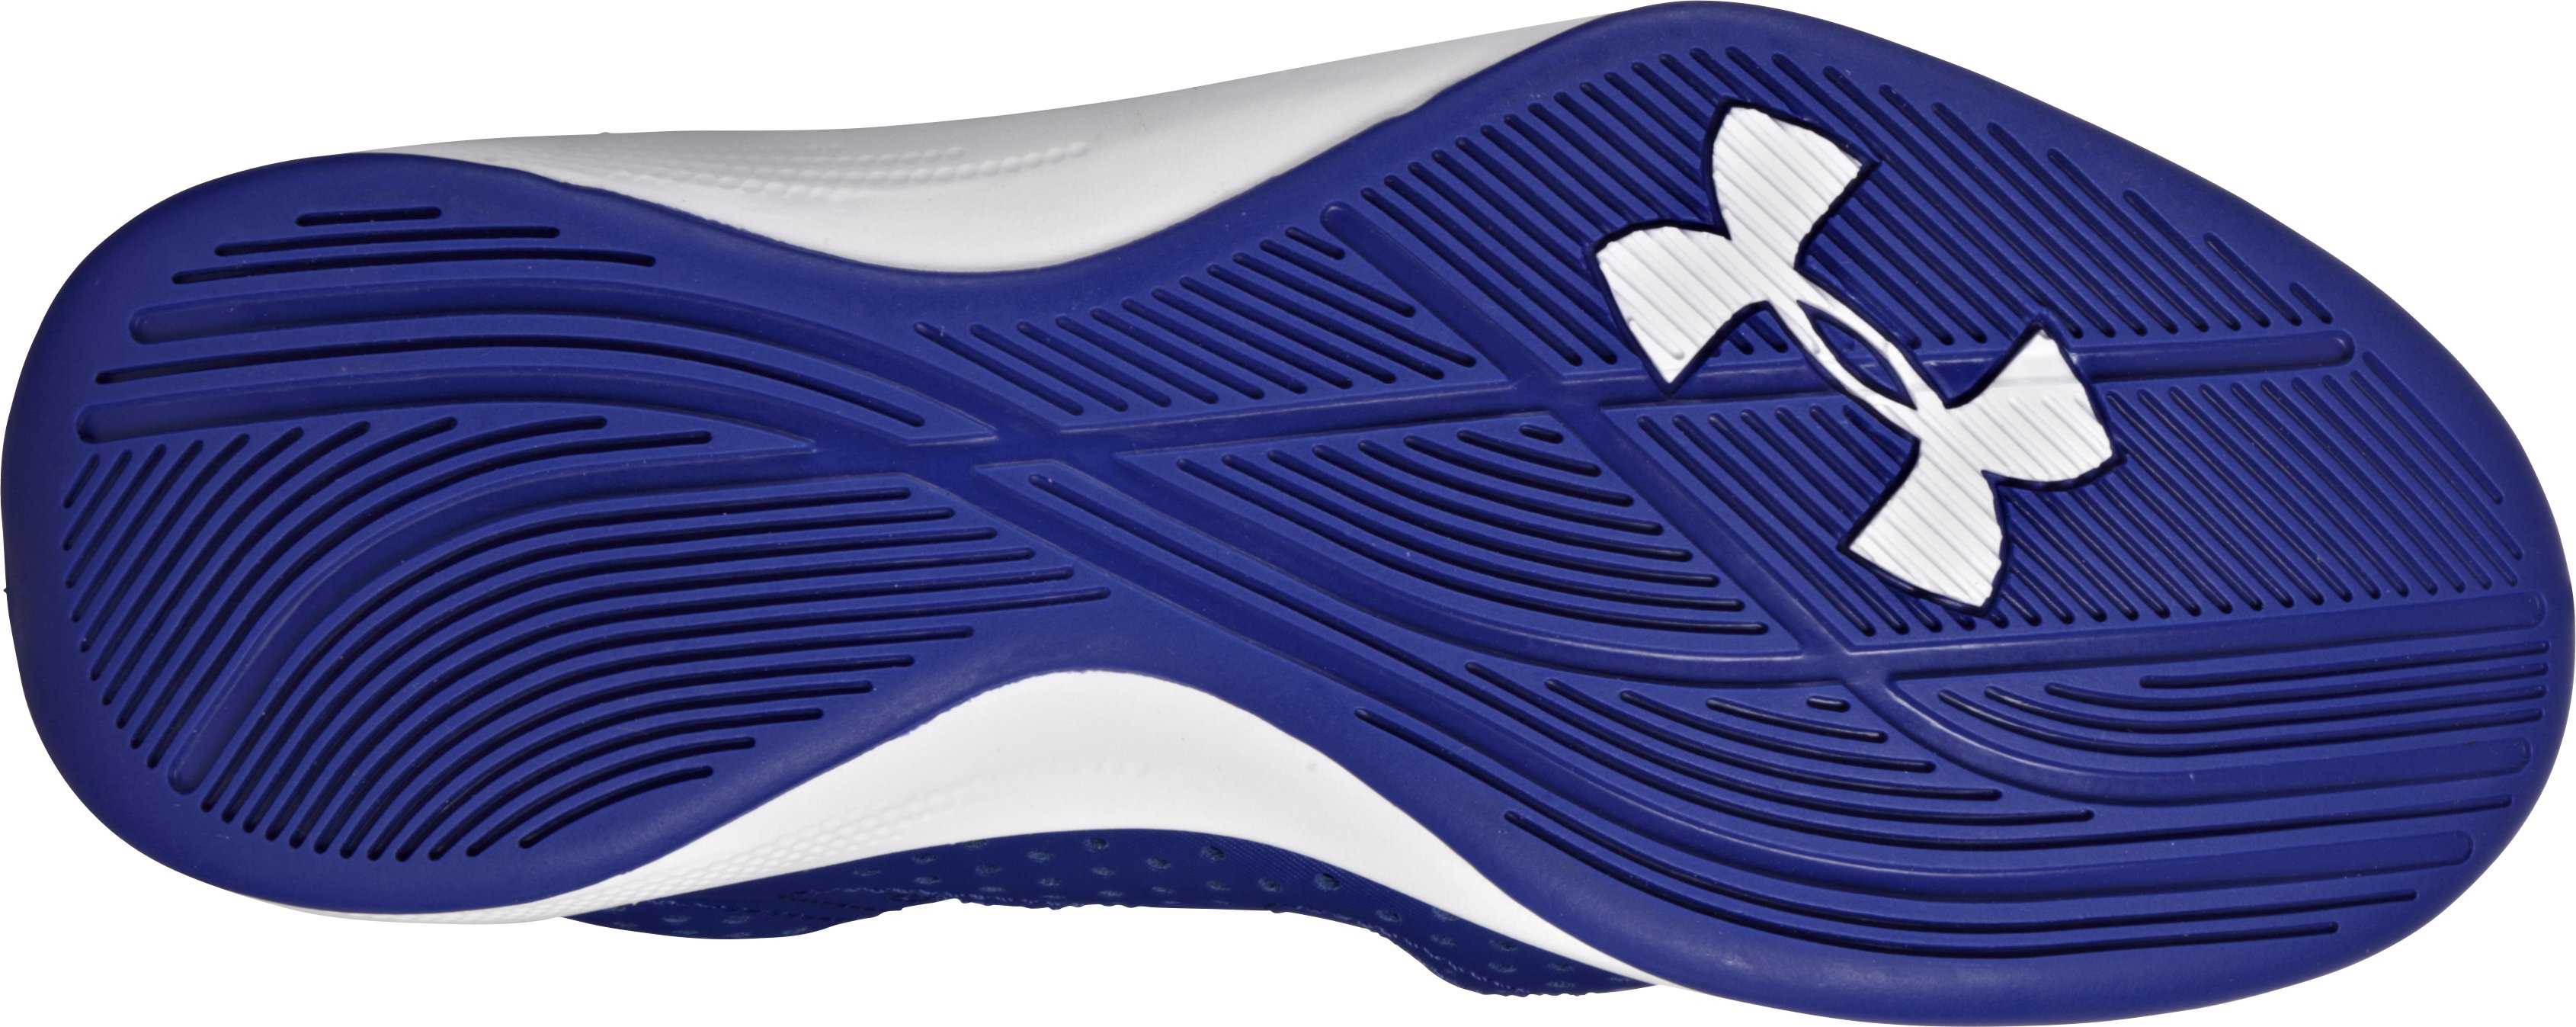 Boys' UA Torch 2 Basketball Shoes, Royal